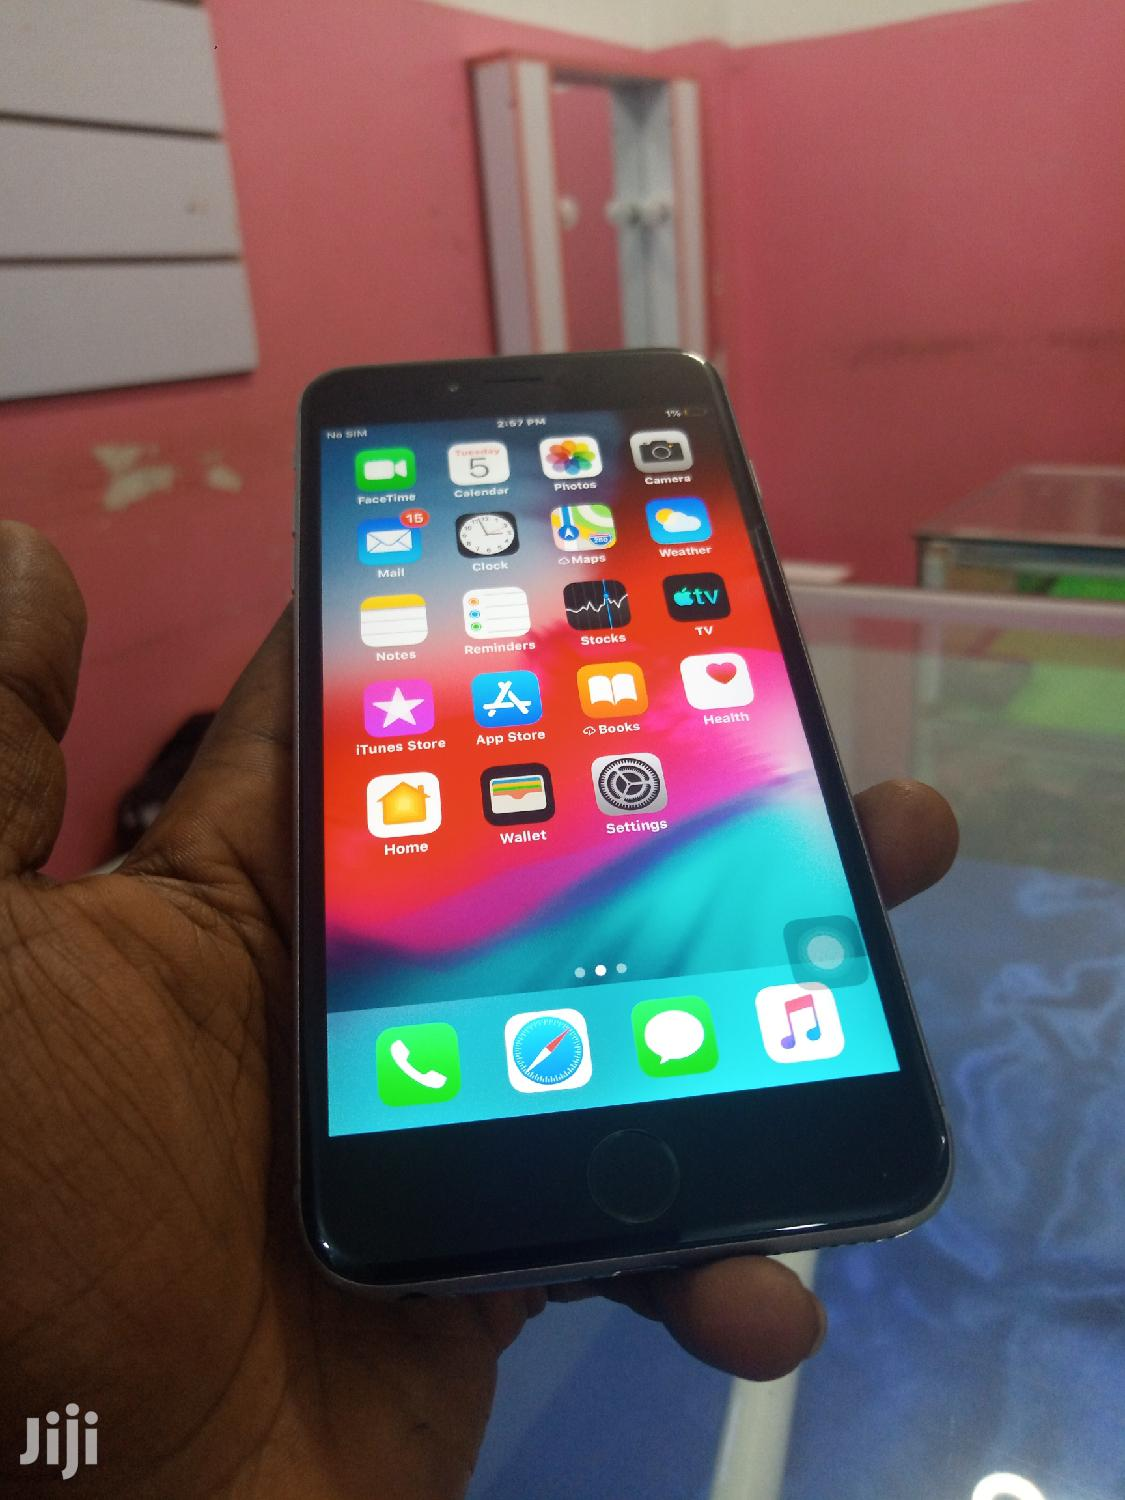 Apple iPhone 6s Plus 128 GB Silver | Mobile Phones for sale in Kampala, Central Region, Uganda